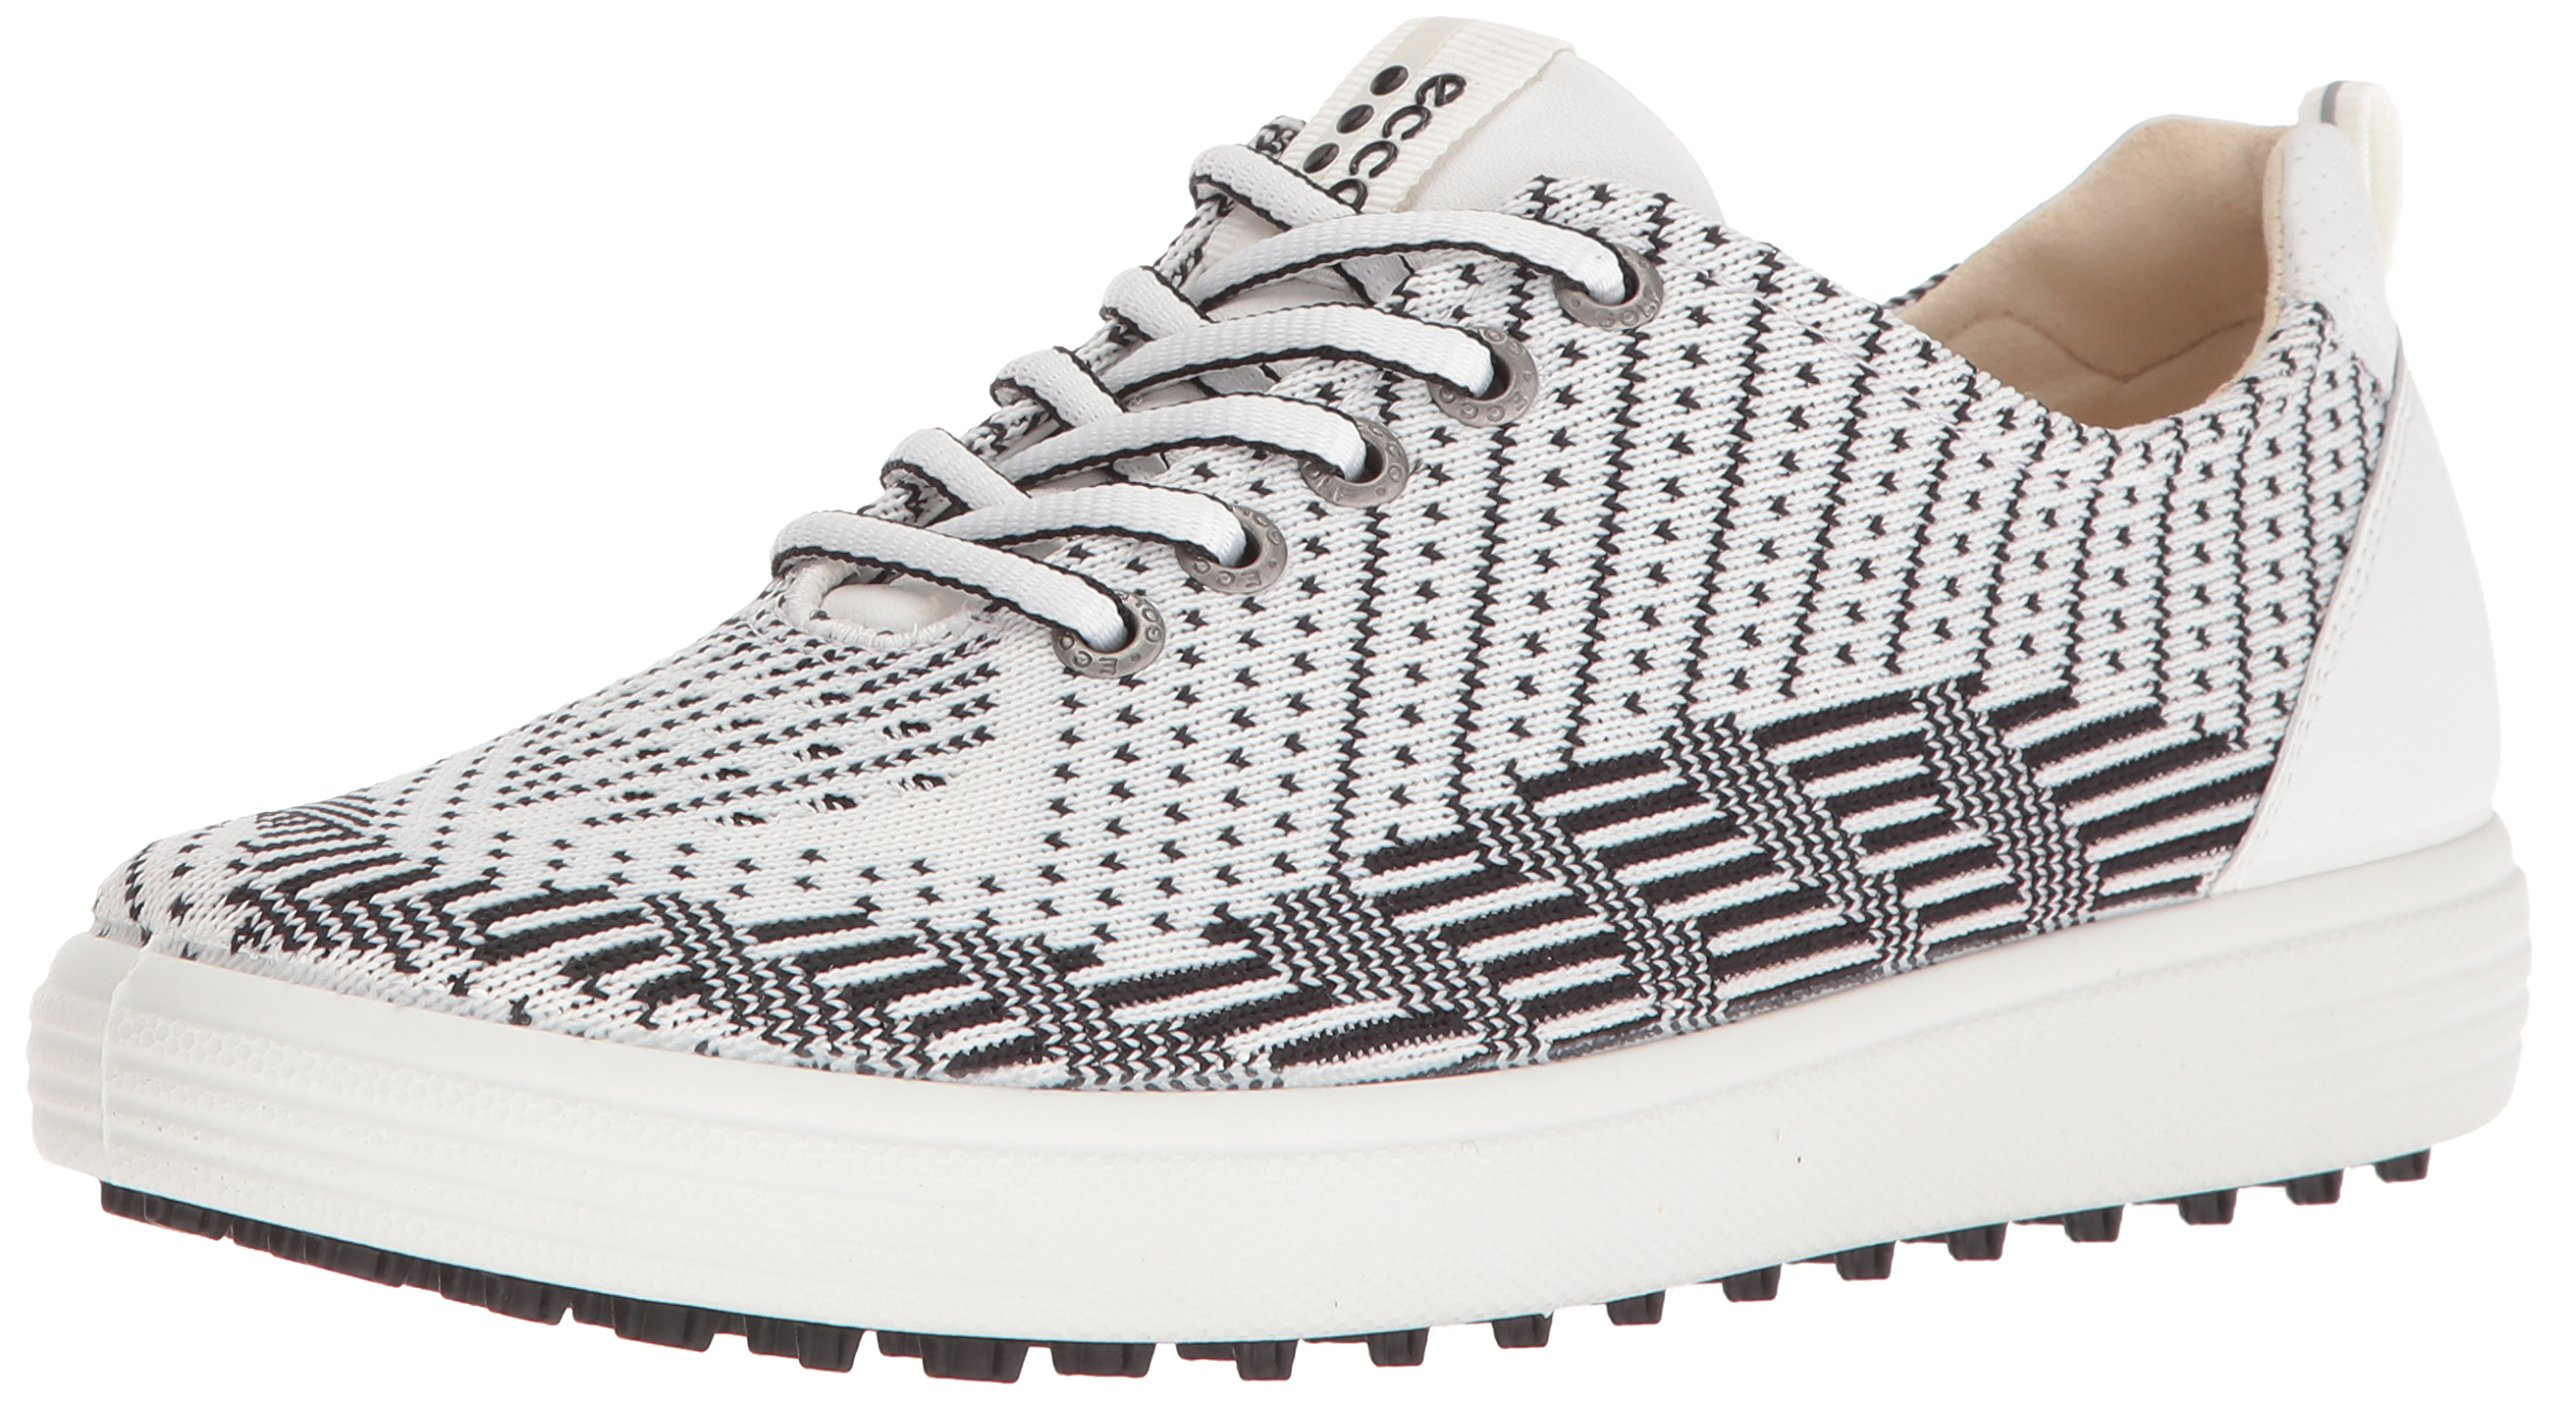 ECCO Women's Casual Hybrid Knit Golf Shoe, White Black/White, 38 EU/7-7.5 M US